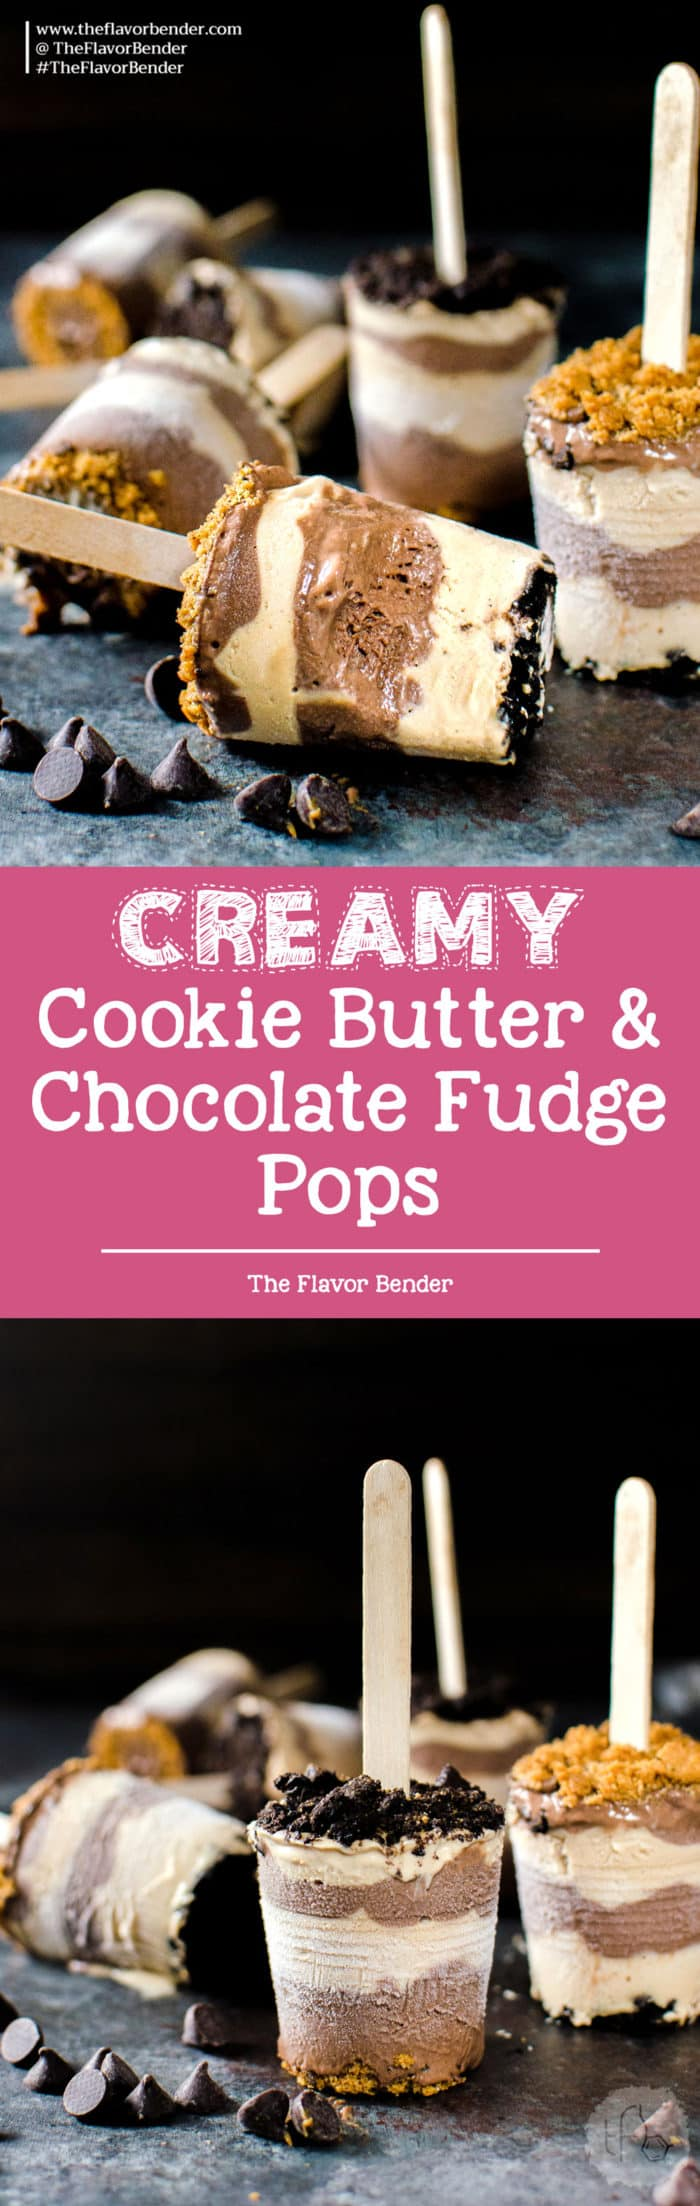 Cookie Butter and Chocolate Fudge Pops -Melt in your mouth creamy, smooth, sweet and salty Cookie Butter and Chocolate Fudge Pops, topped with crushed Oreos and Biscoff cookies! Vegan Friendly too!